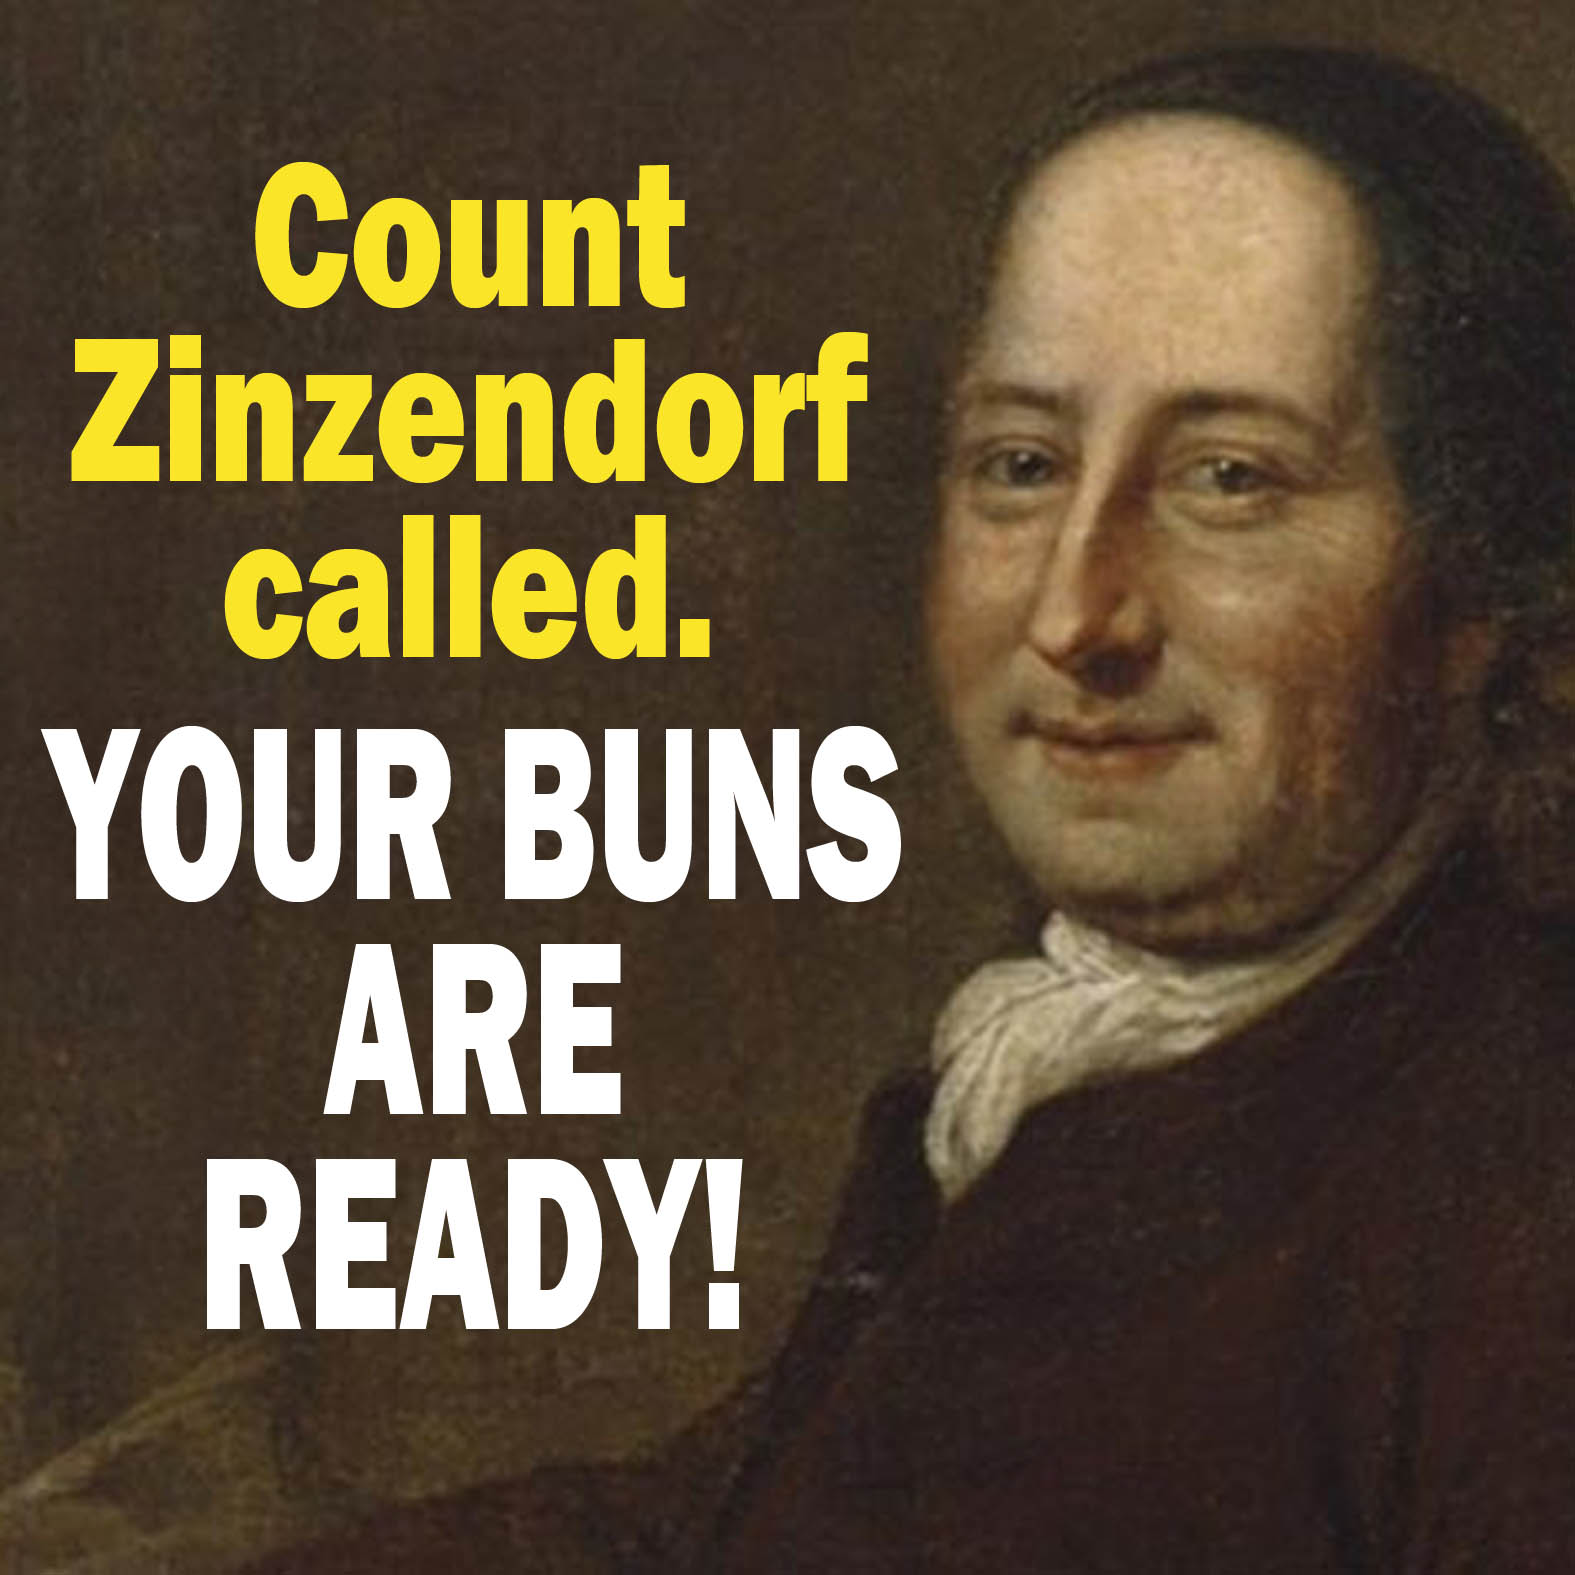 Your Buns Are Ready!